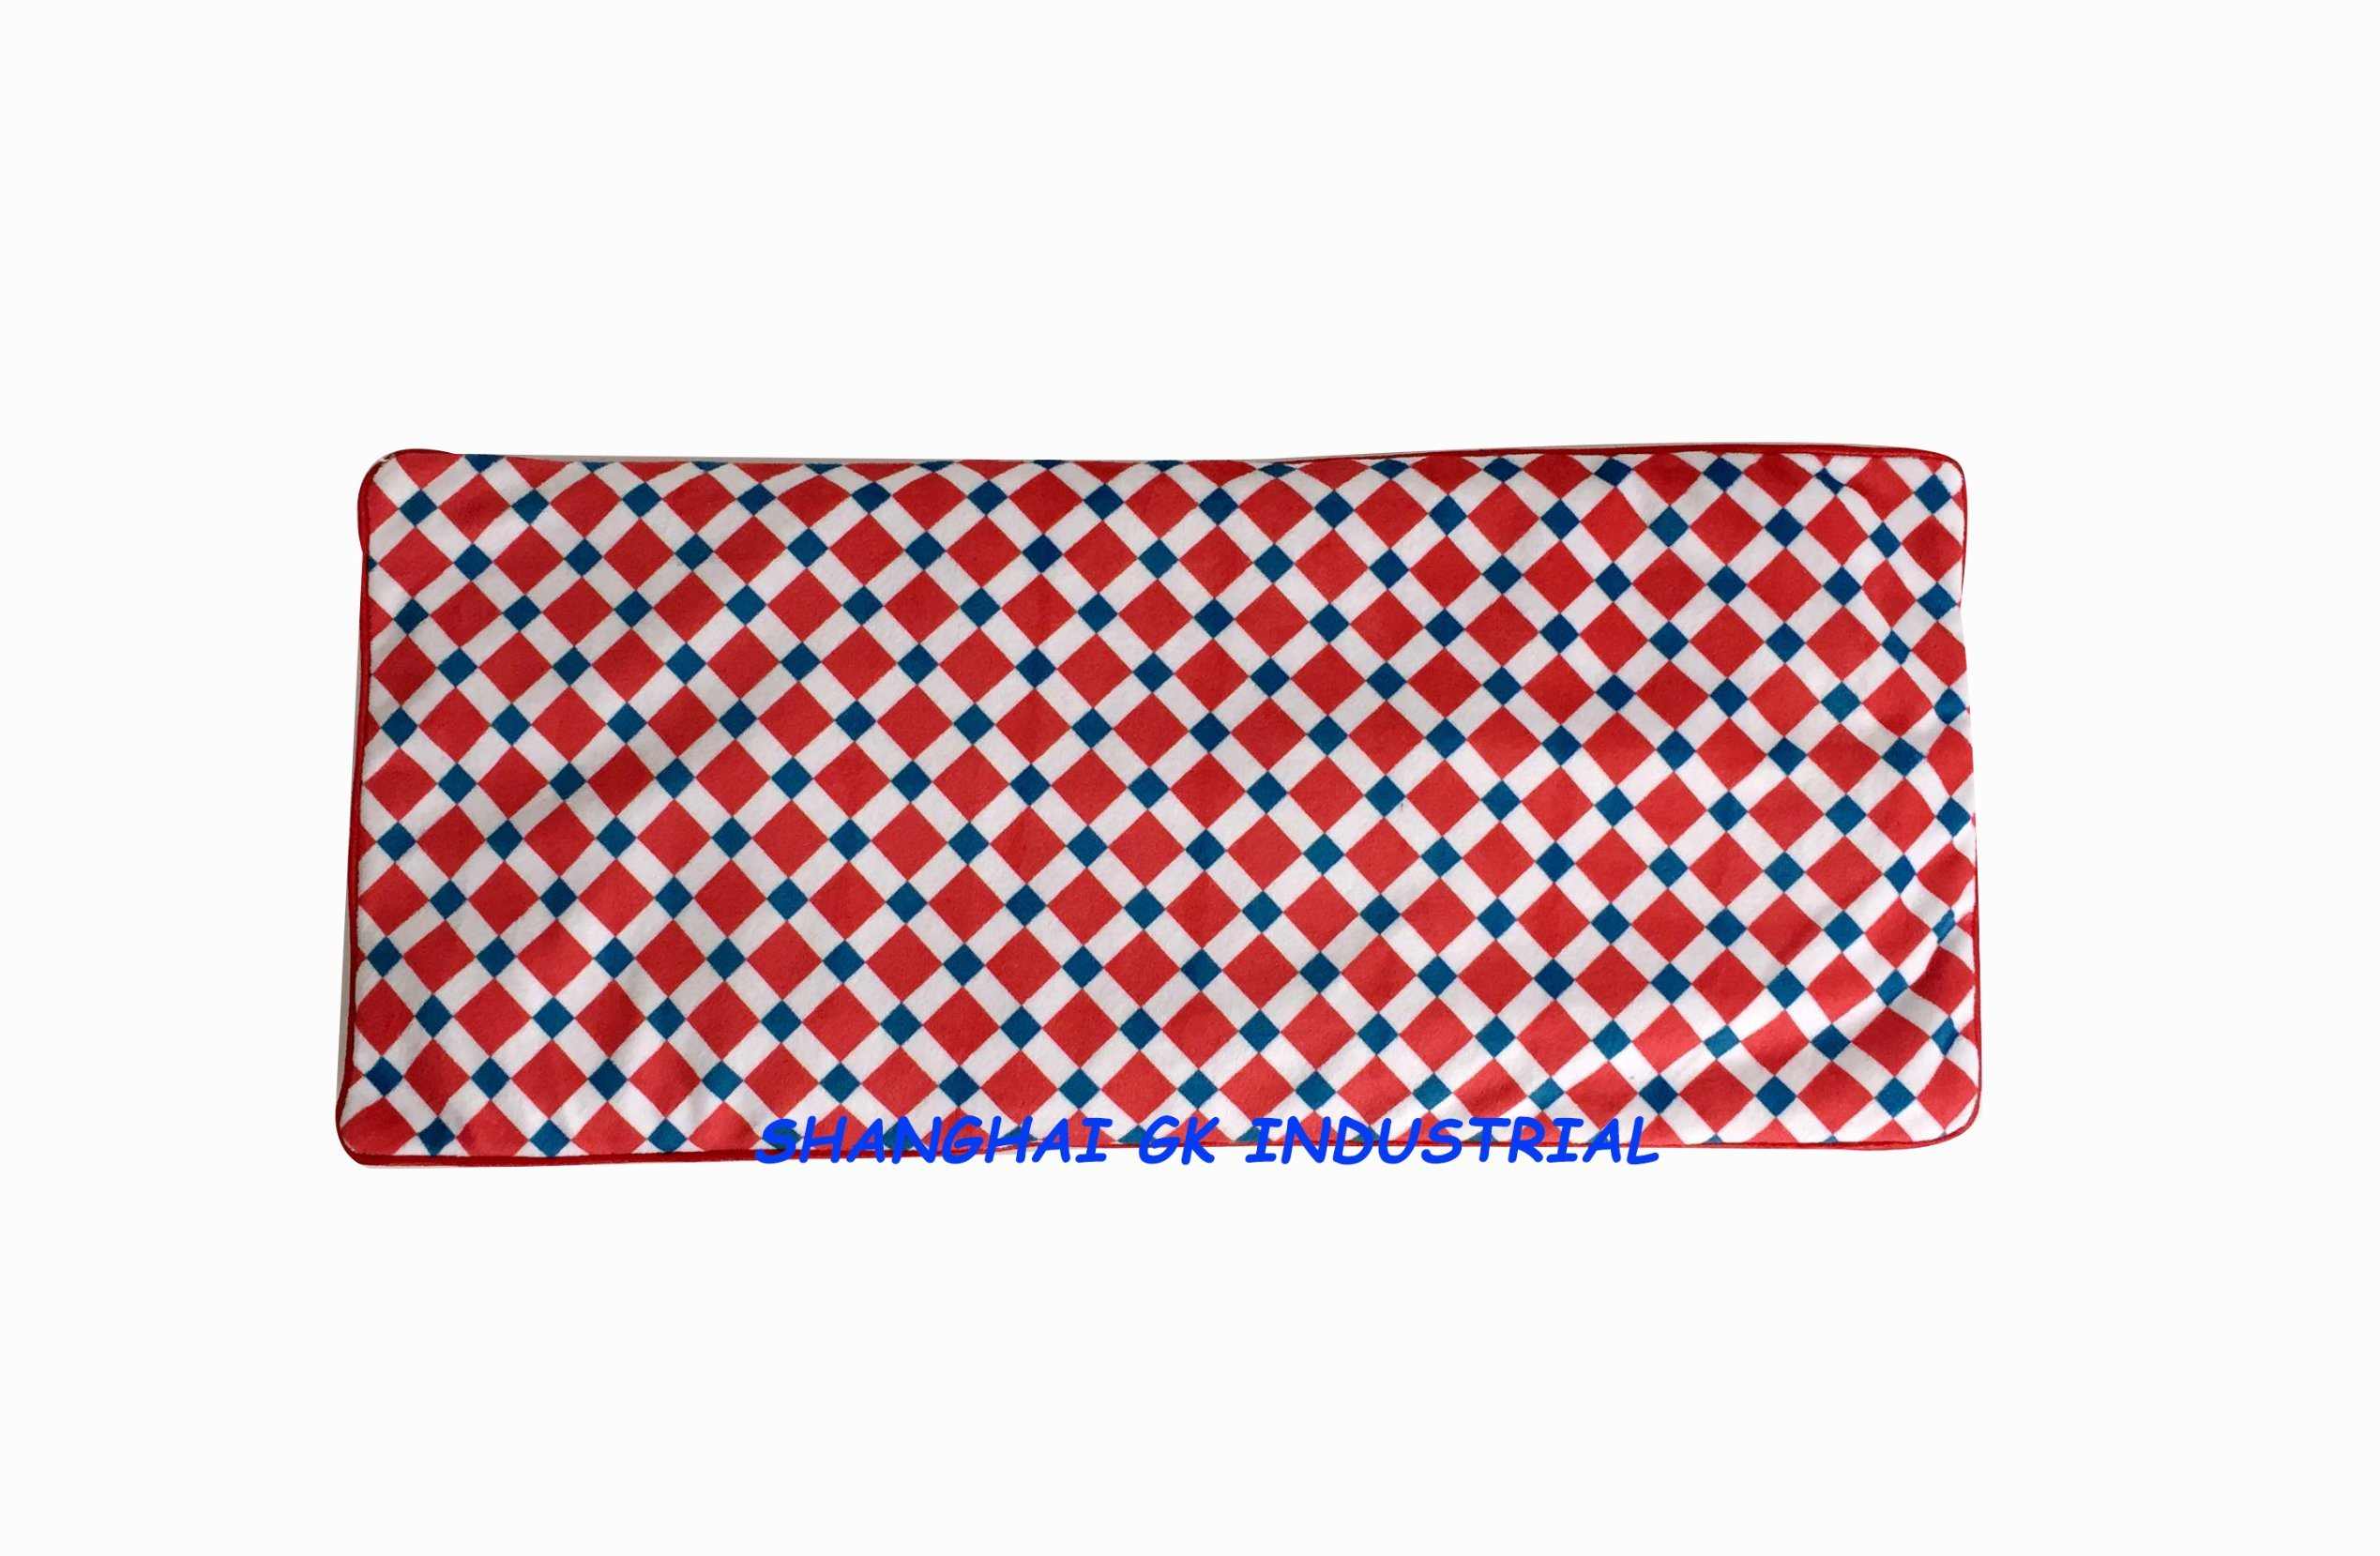 Sunny Bay Lavender - Scented Extra Long Neck Heat Wrap, Microwavable Aromatherapy Pillow